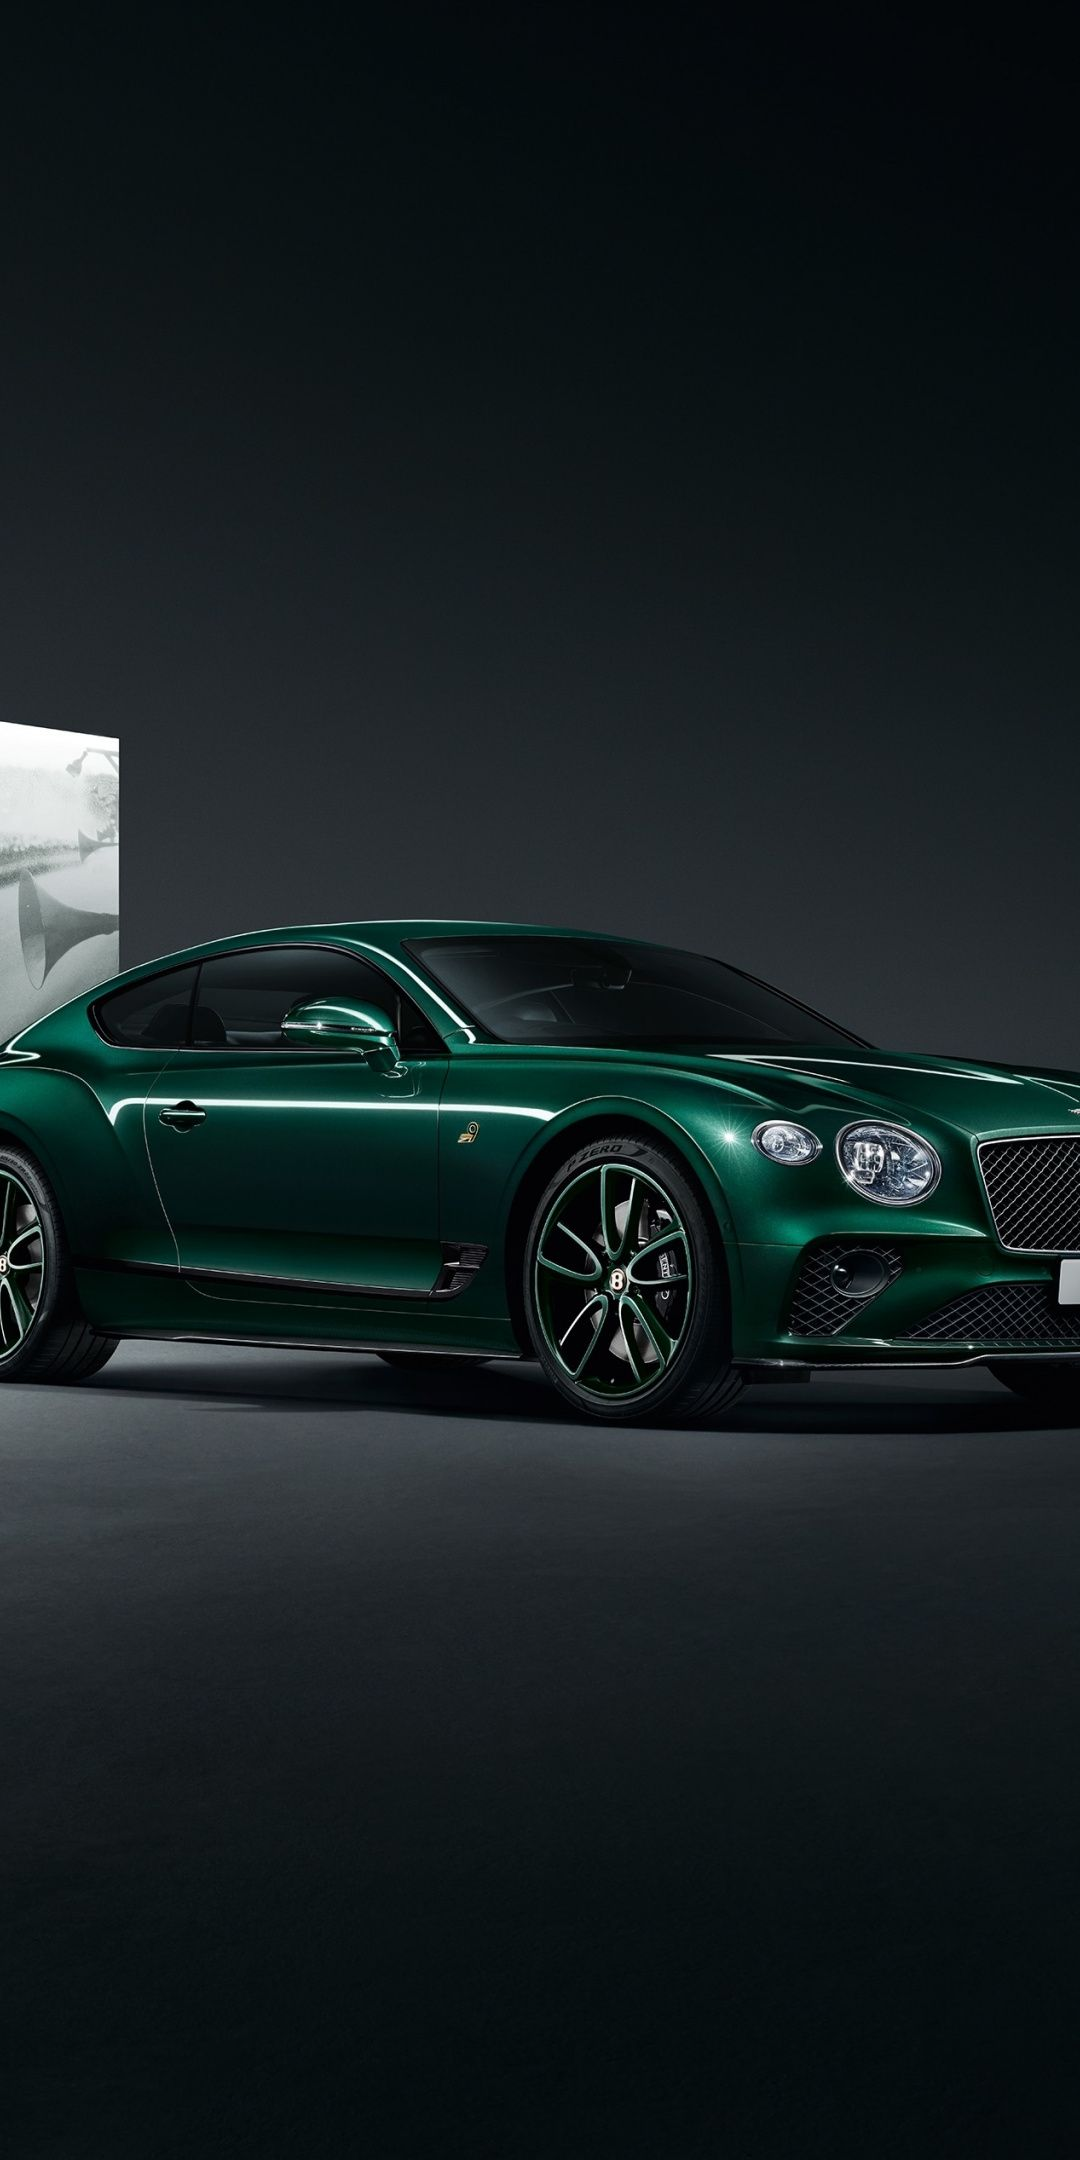 Green Bentley Continental GT number 9 edition portrait 1080x2160